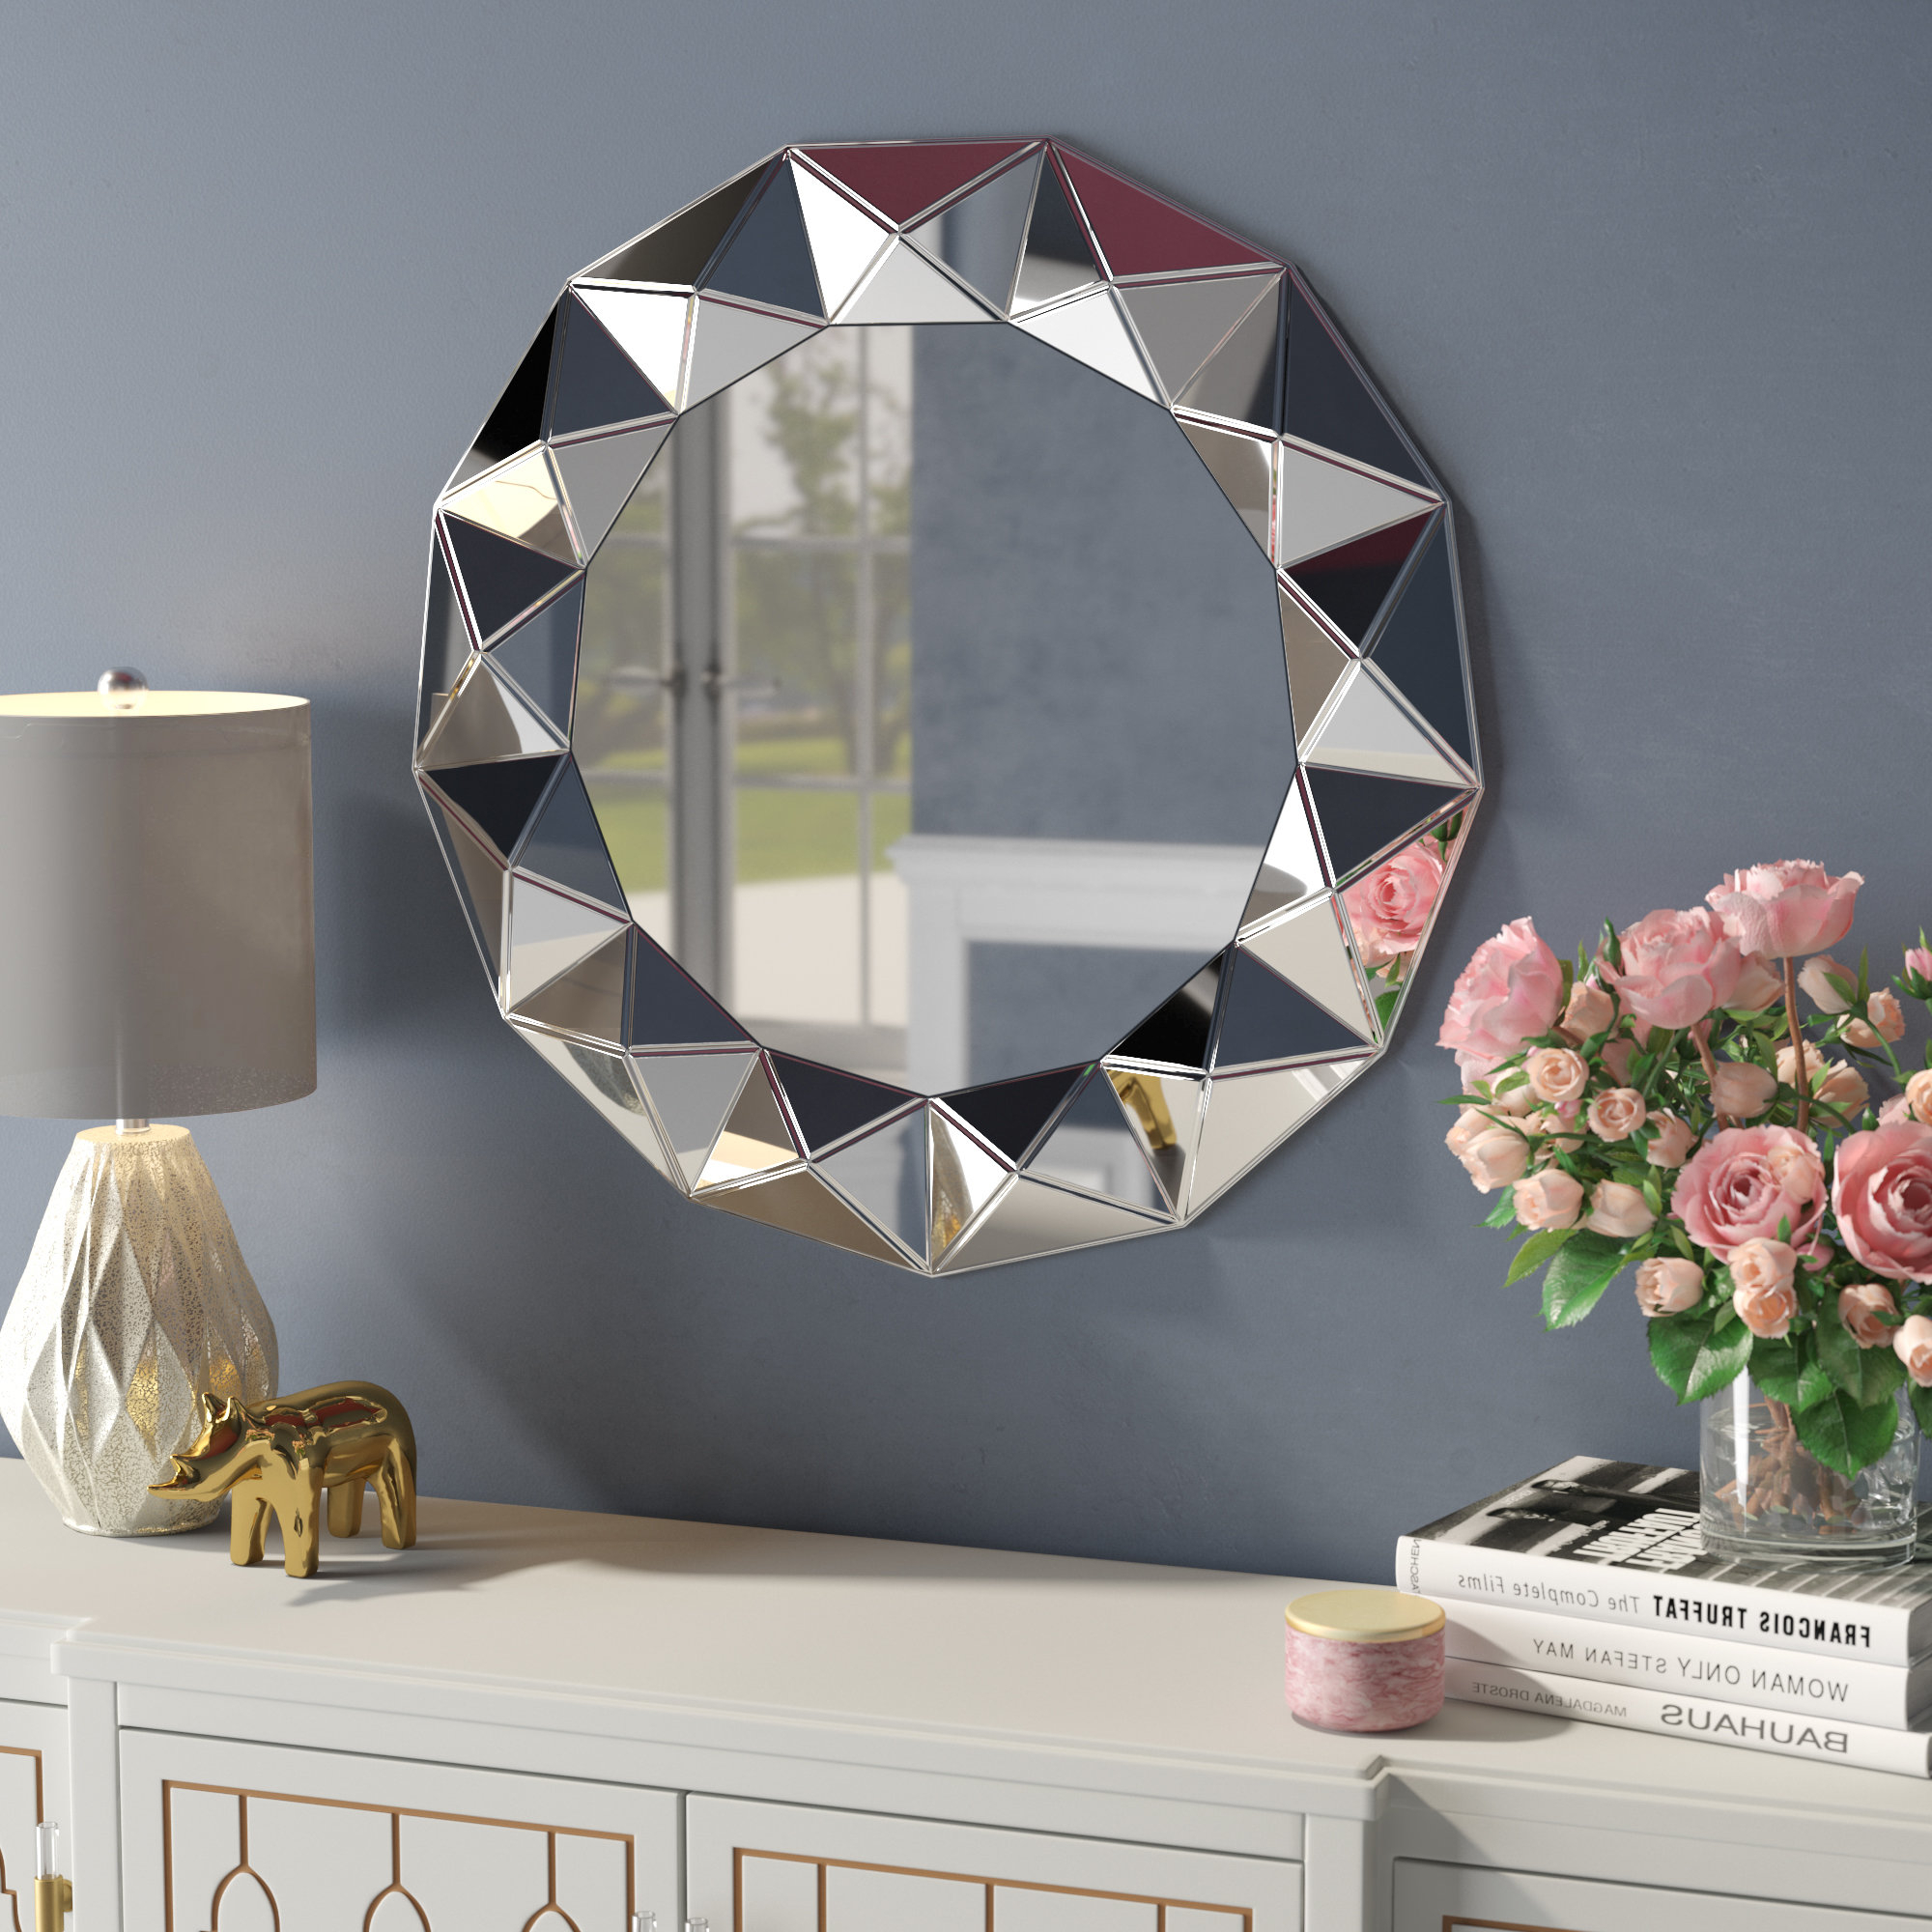 Decorative Round Wall Mirrors For Best And Newest Traditional Round Decorative Wall Mirror (View 14 of 20)